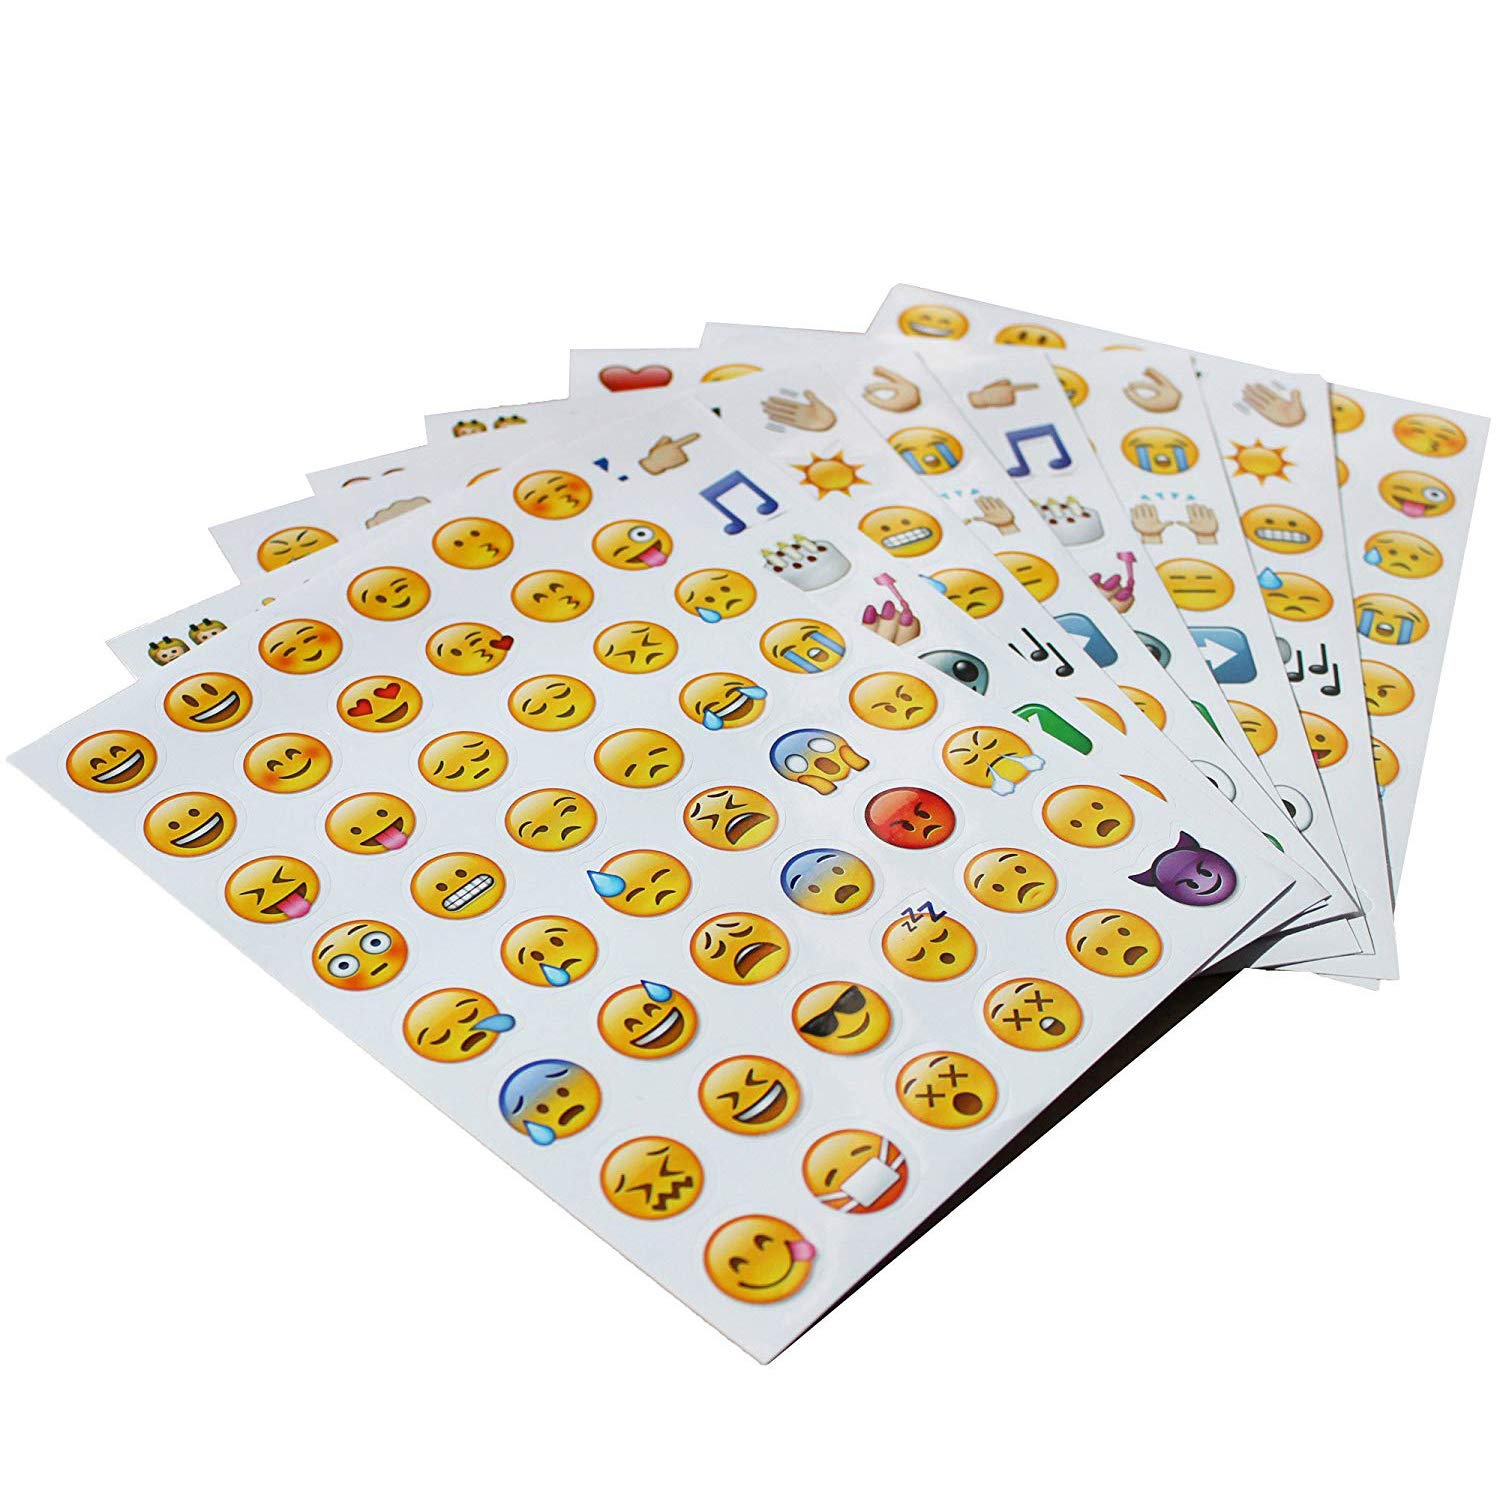 Emoji sticker 8 pages happy face stickers decorative funny emotion faces from facebook iphone amazon ca toys games